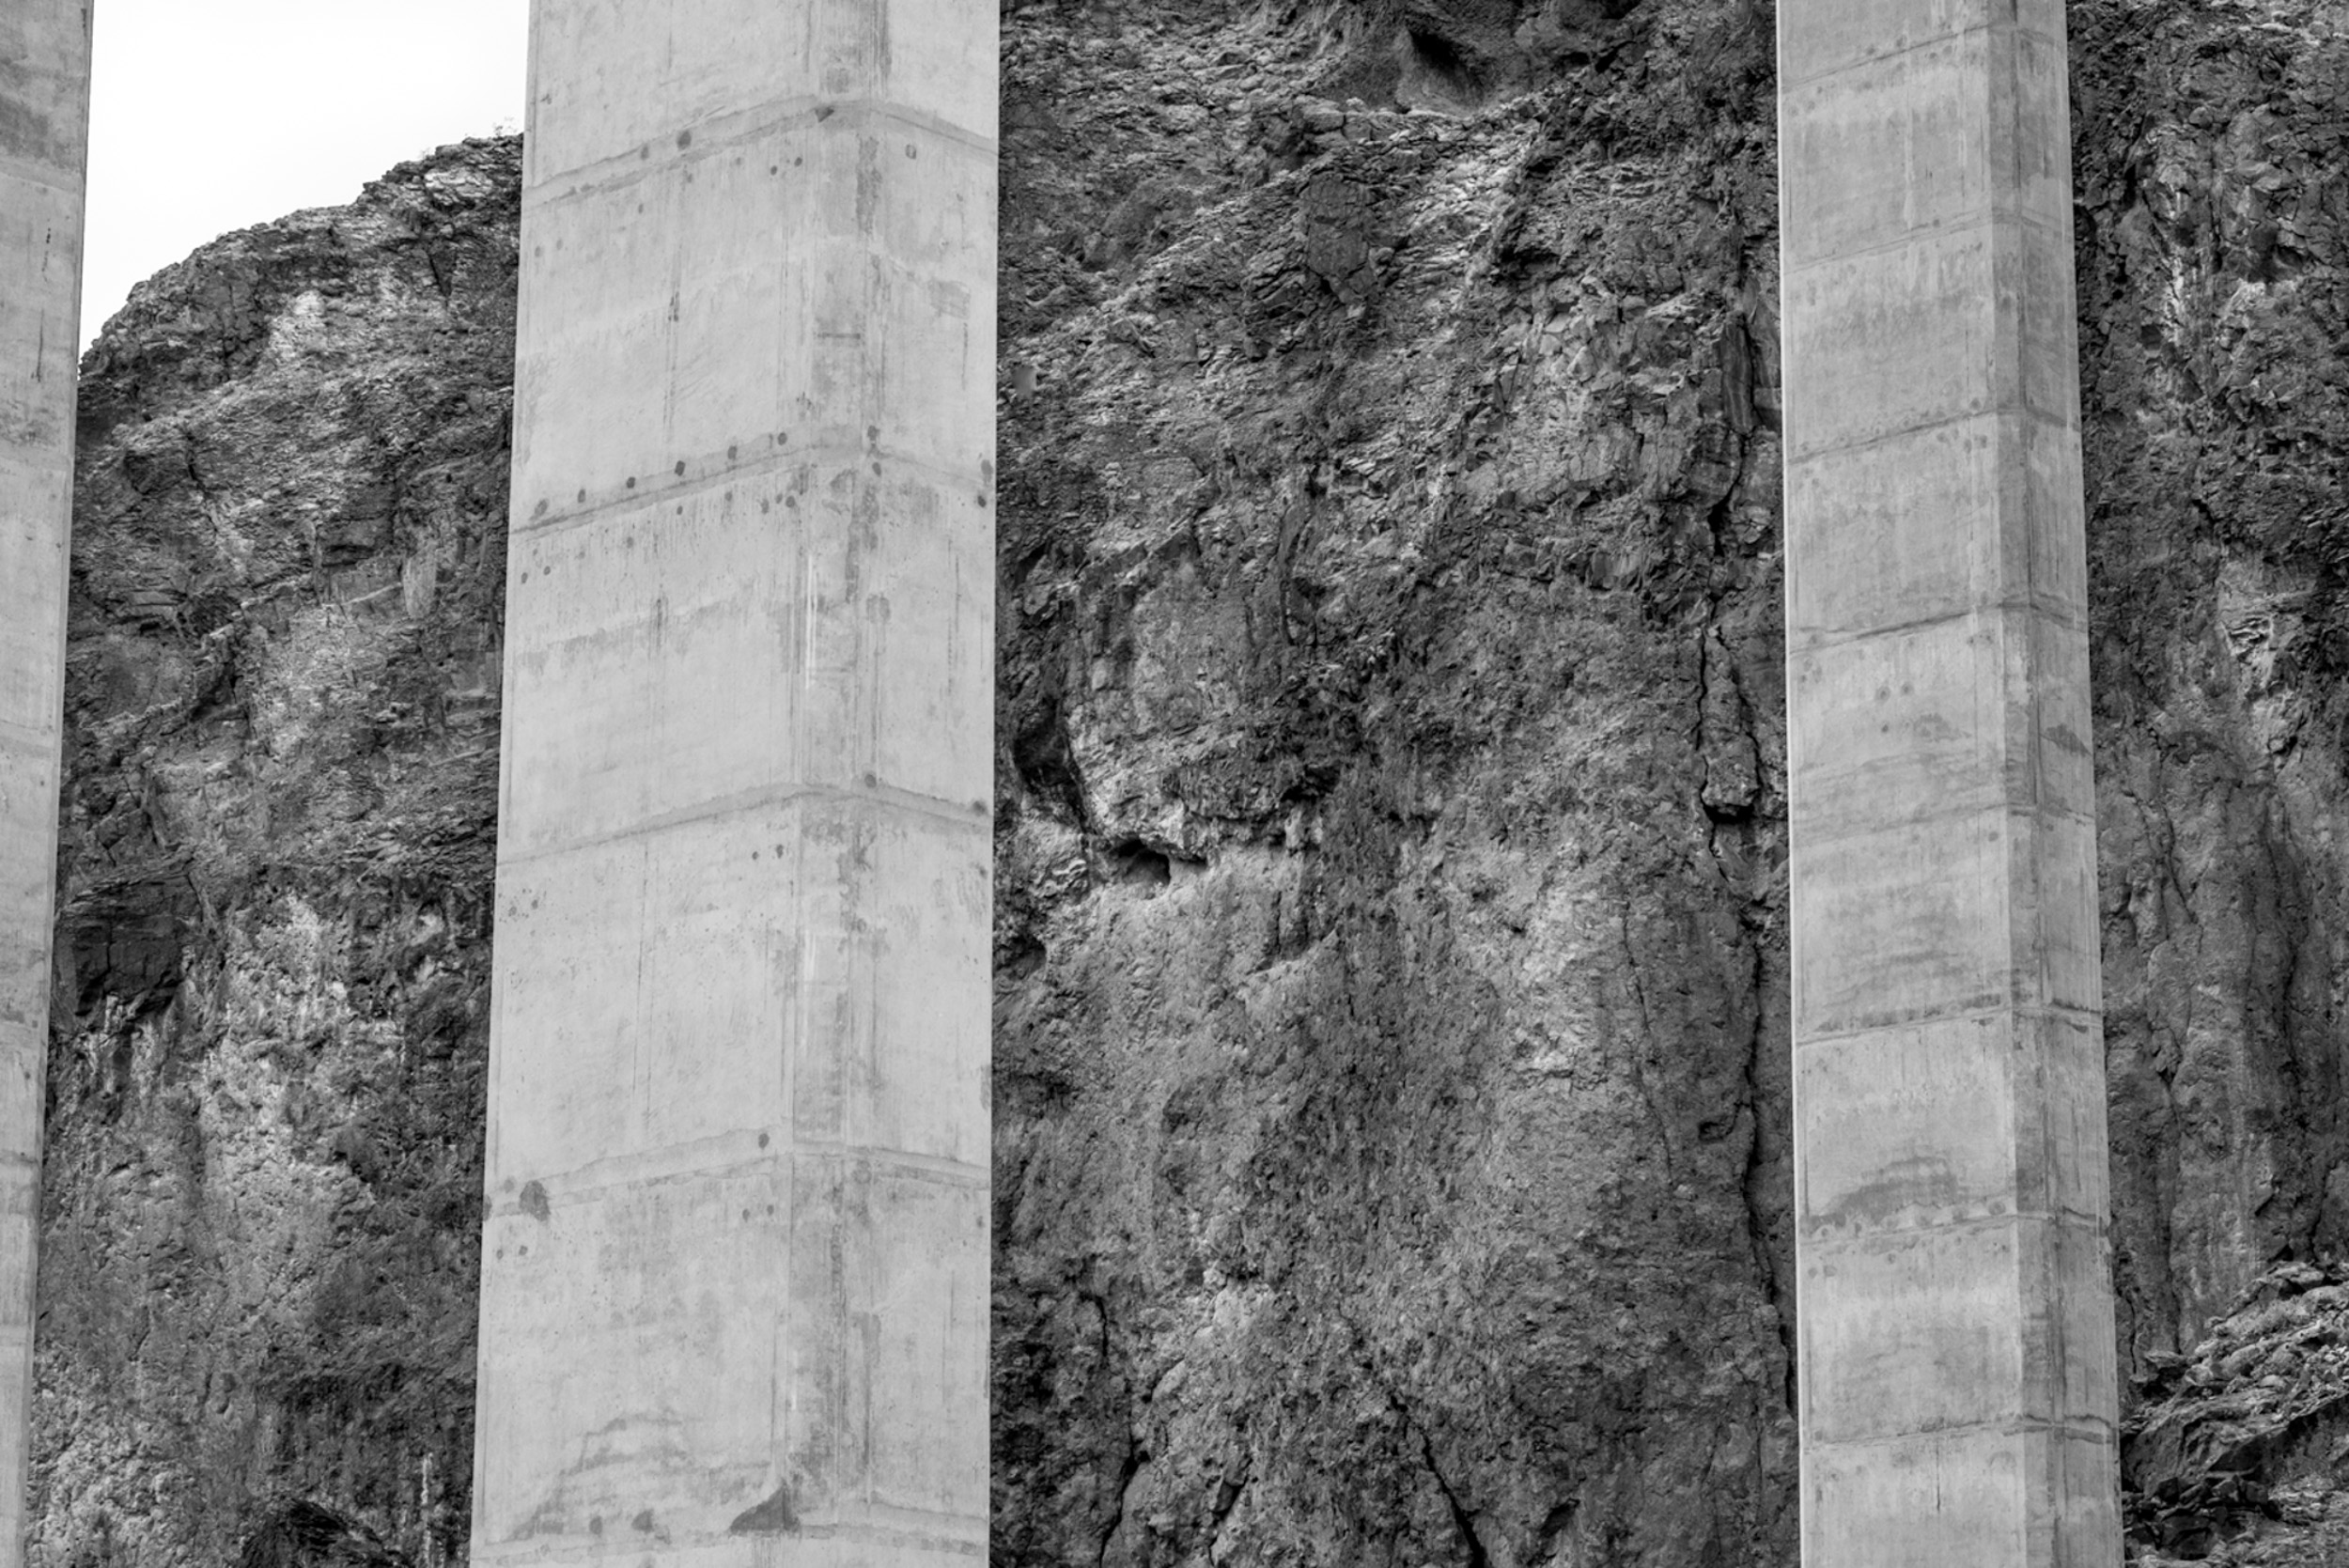 Columns and Rock Wall Near Hover Dam, Nevada © Robert Welkie 2017